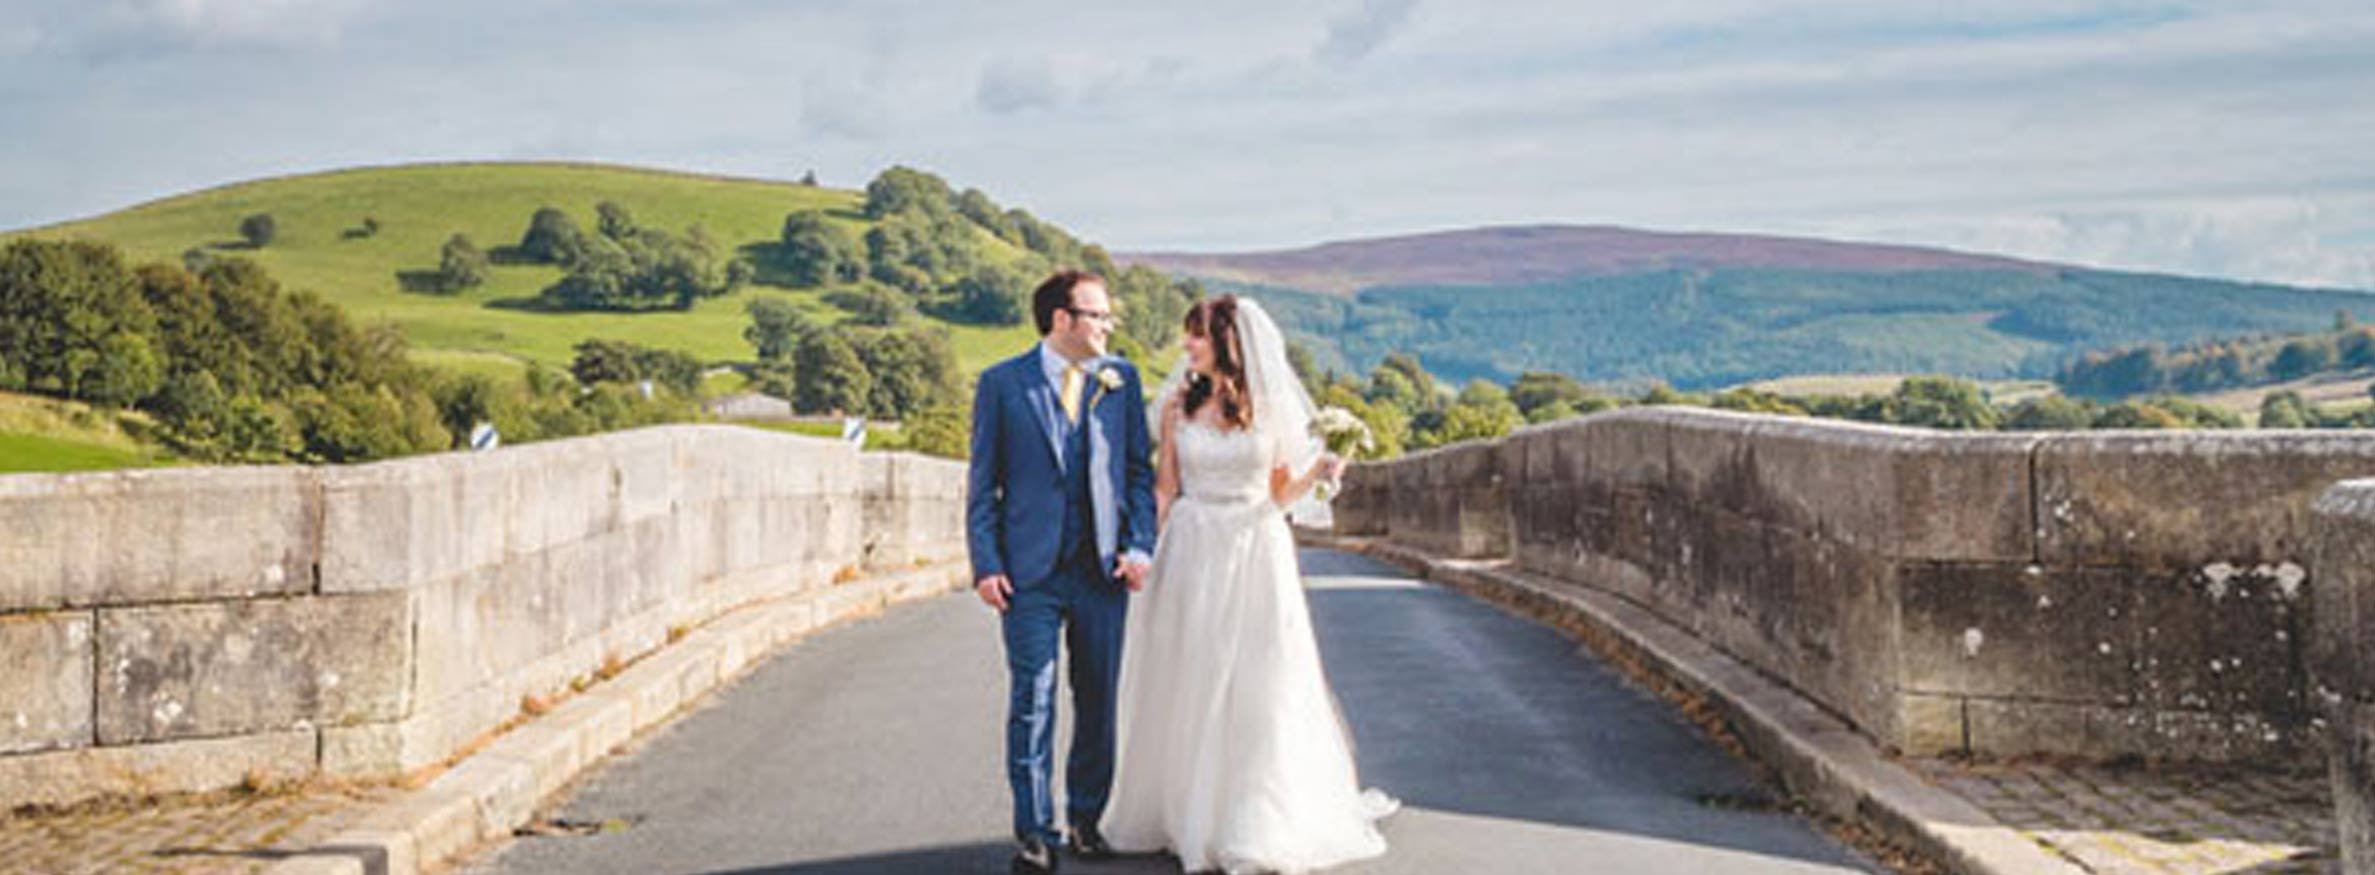 Couple married on a bridge in North Yorkshire